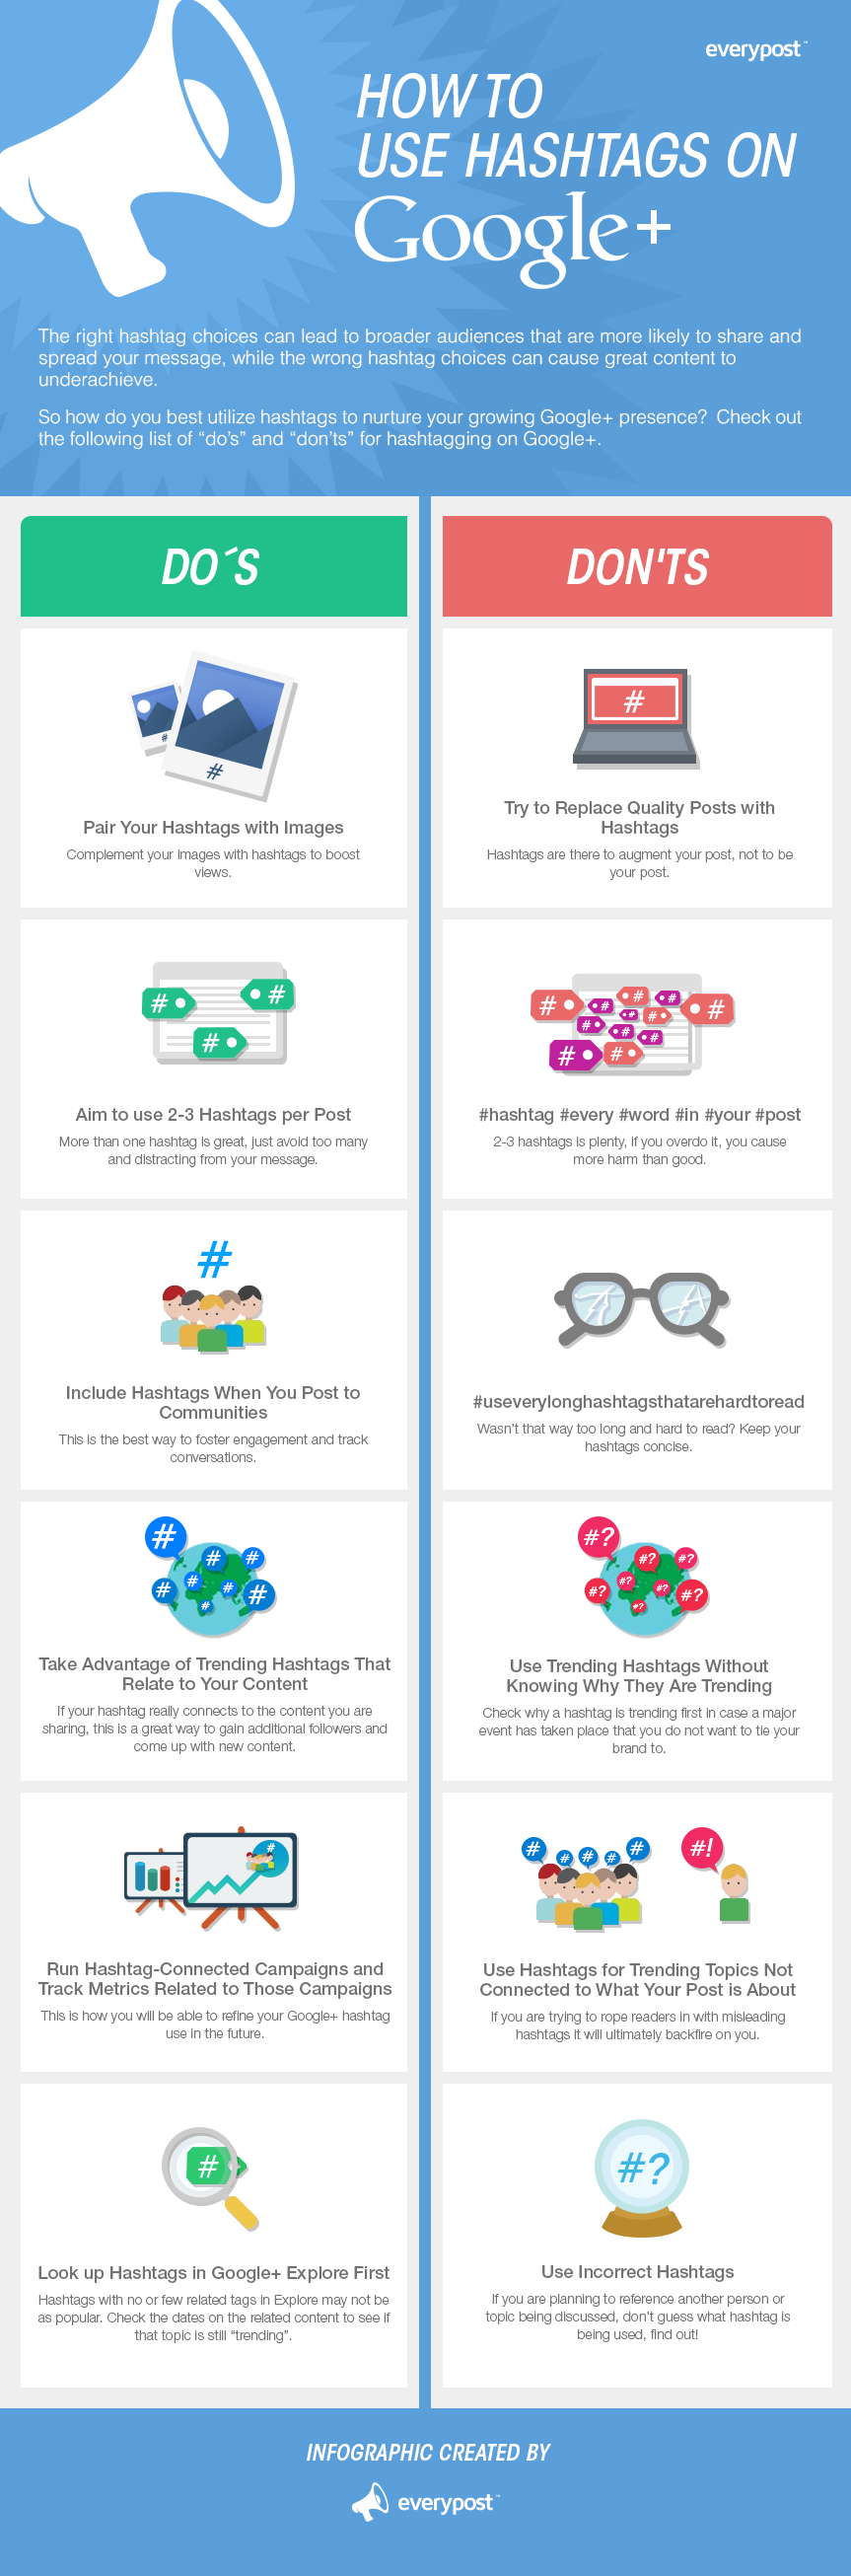 Infographic: How to use Hashtags on Google+ #infographic